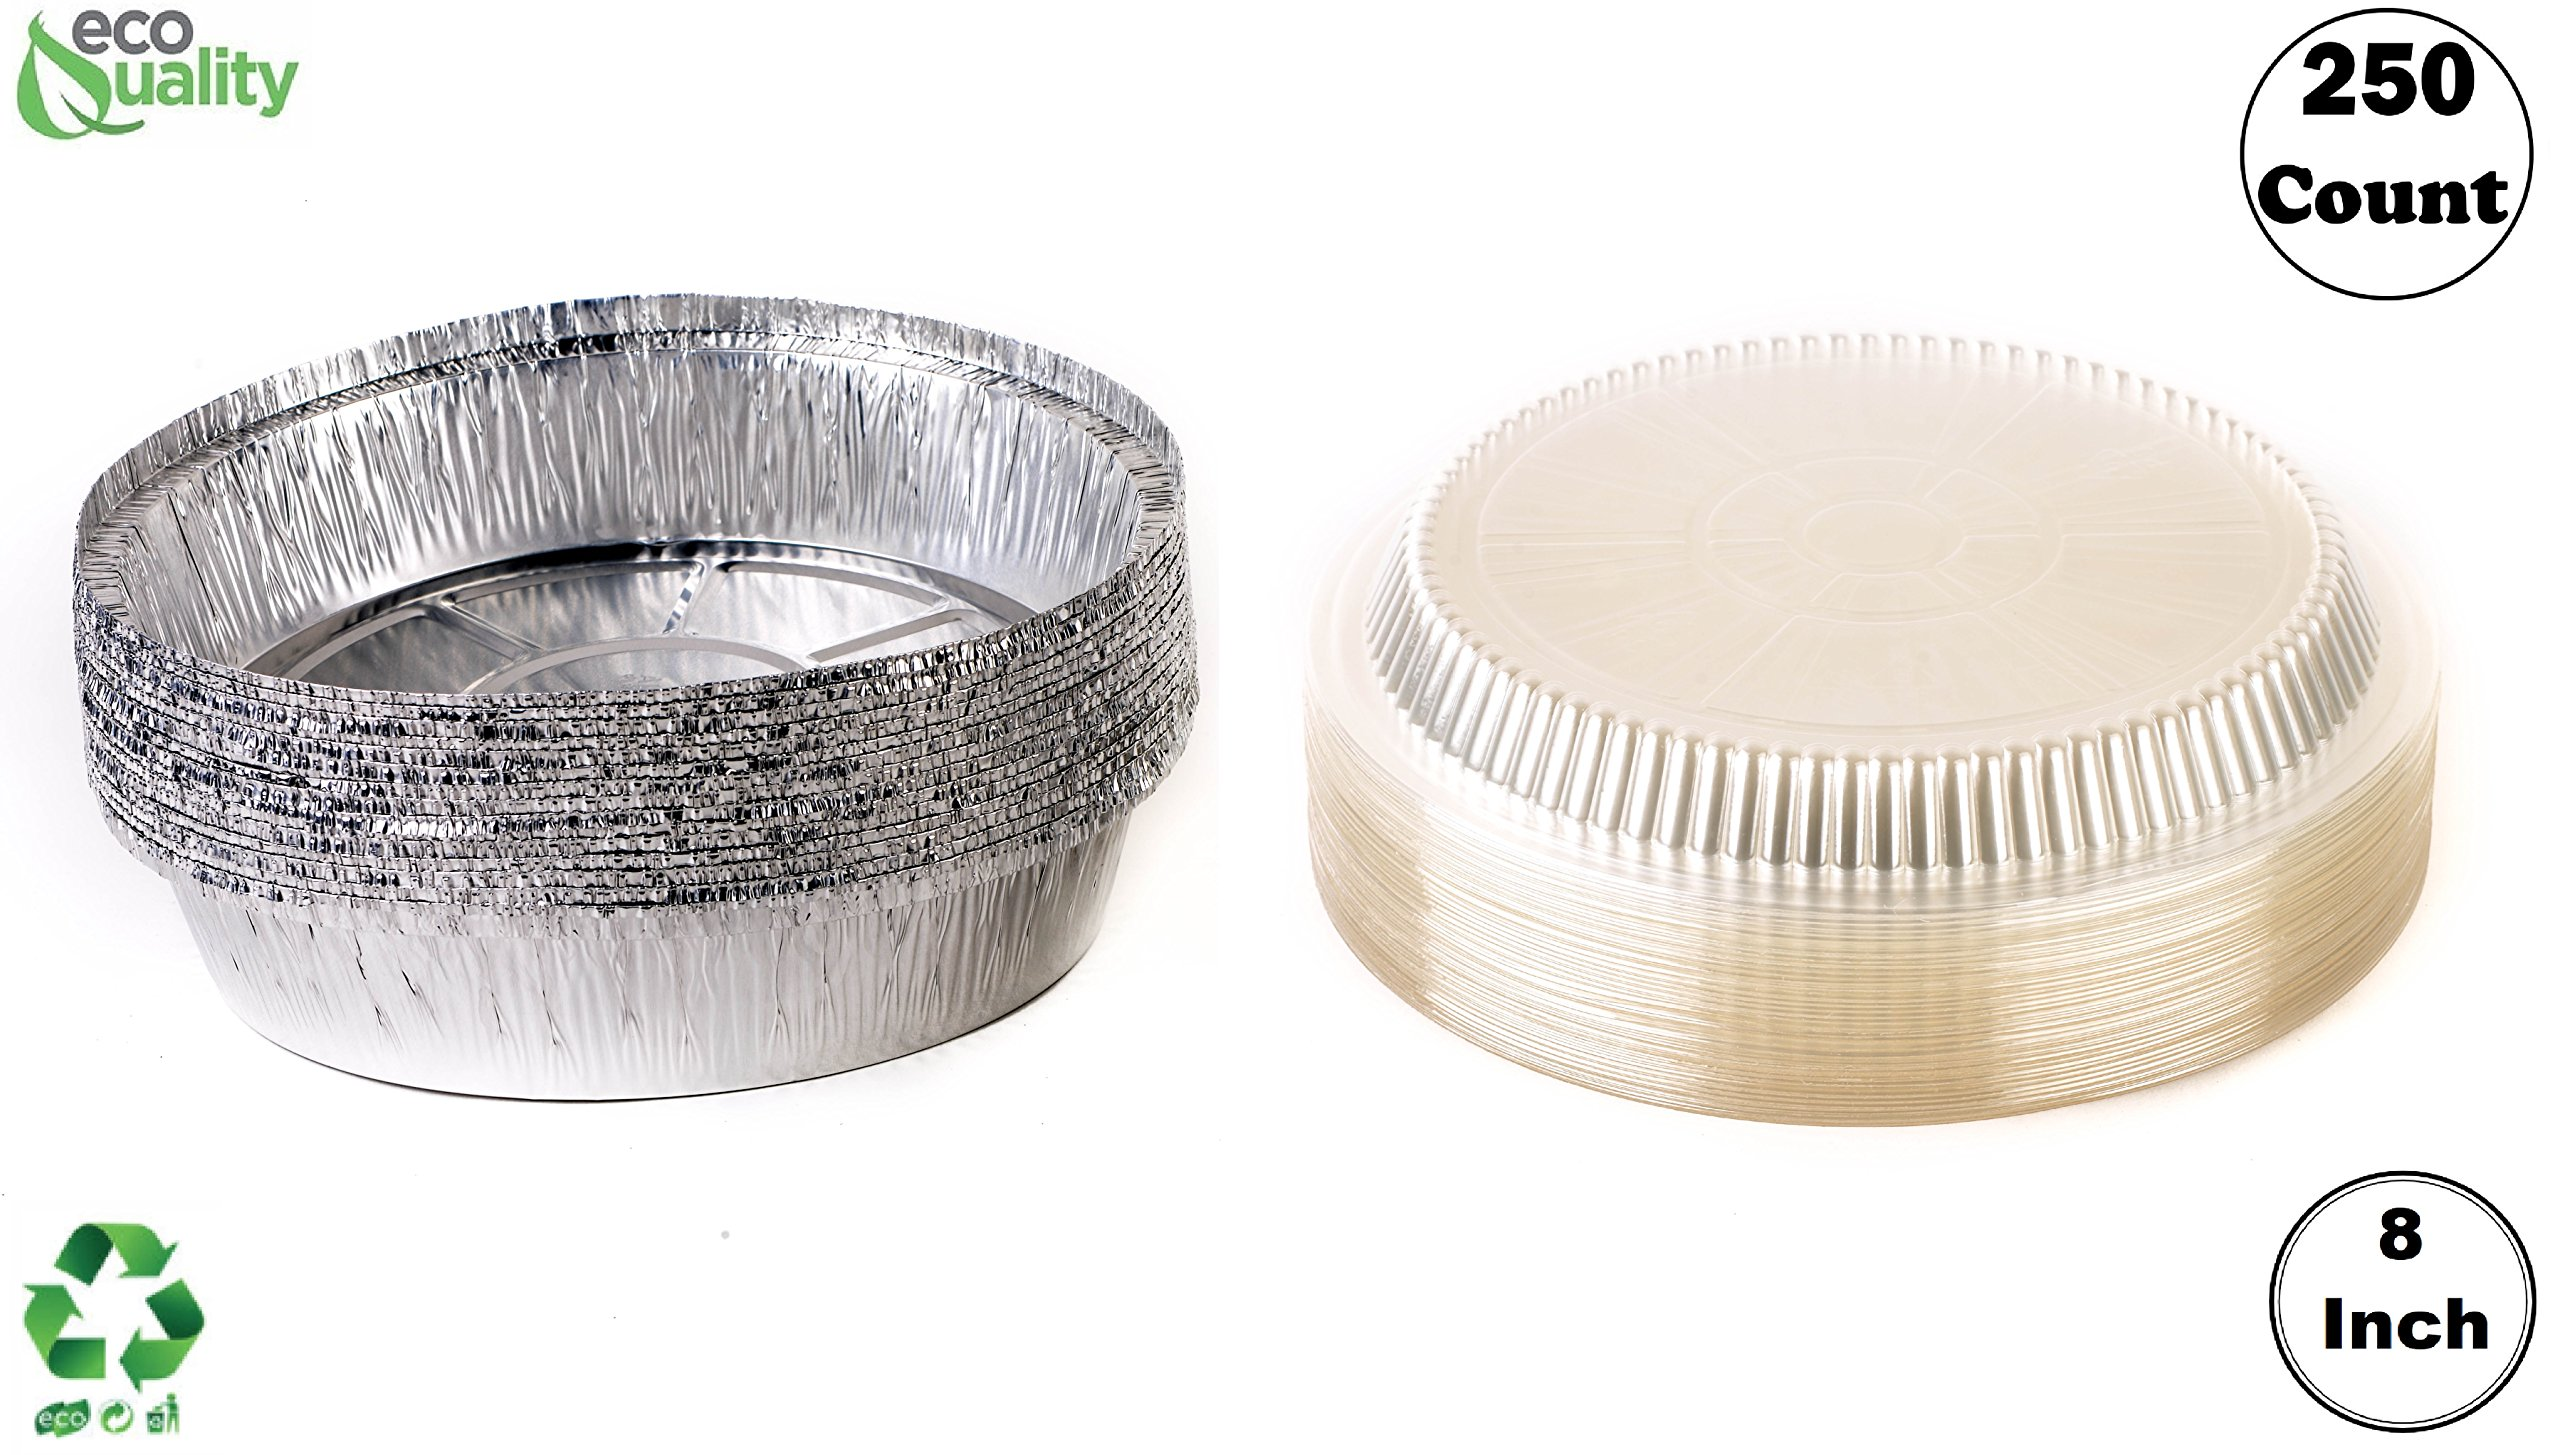 (250 Pack) - 8 Inch Disposable Round Aluminum Foil Take-Out Pans with Plastic Lids Set - Disposable Tin Containers, Perfect for Baking, Cooking, Catering, Parties, Restaurants by EcoQuality